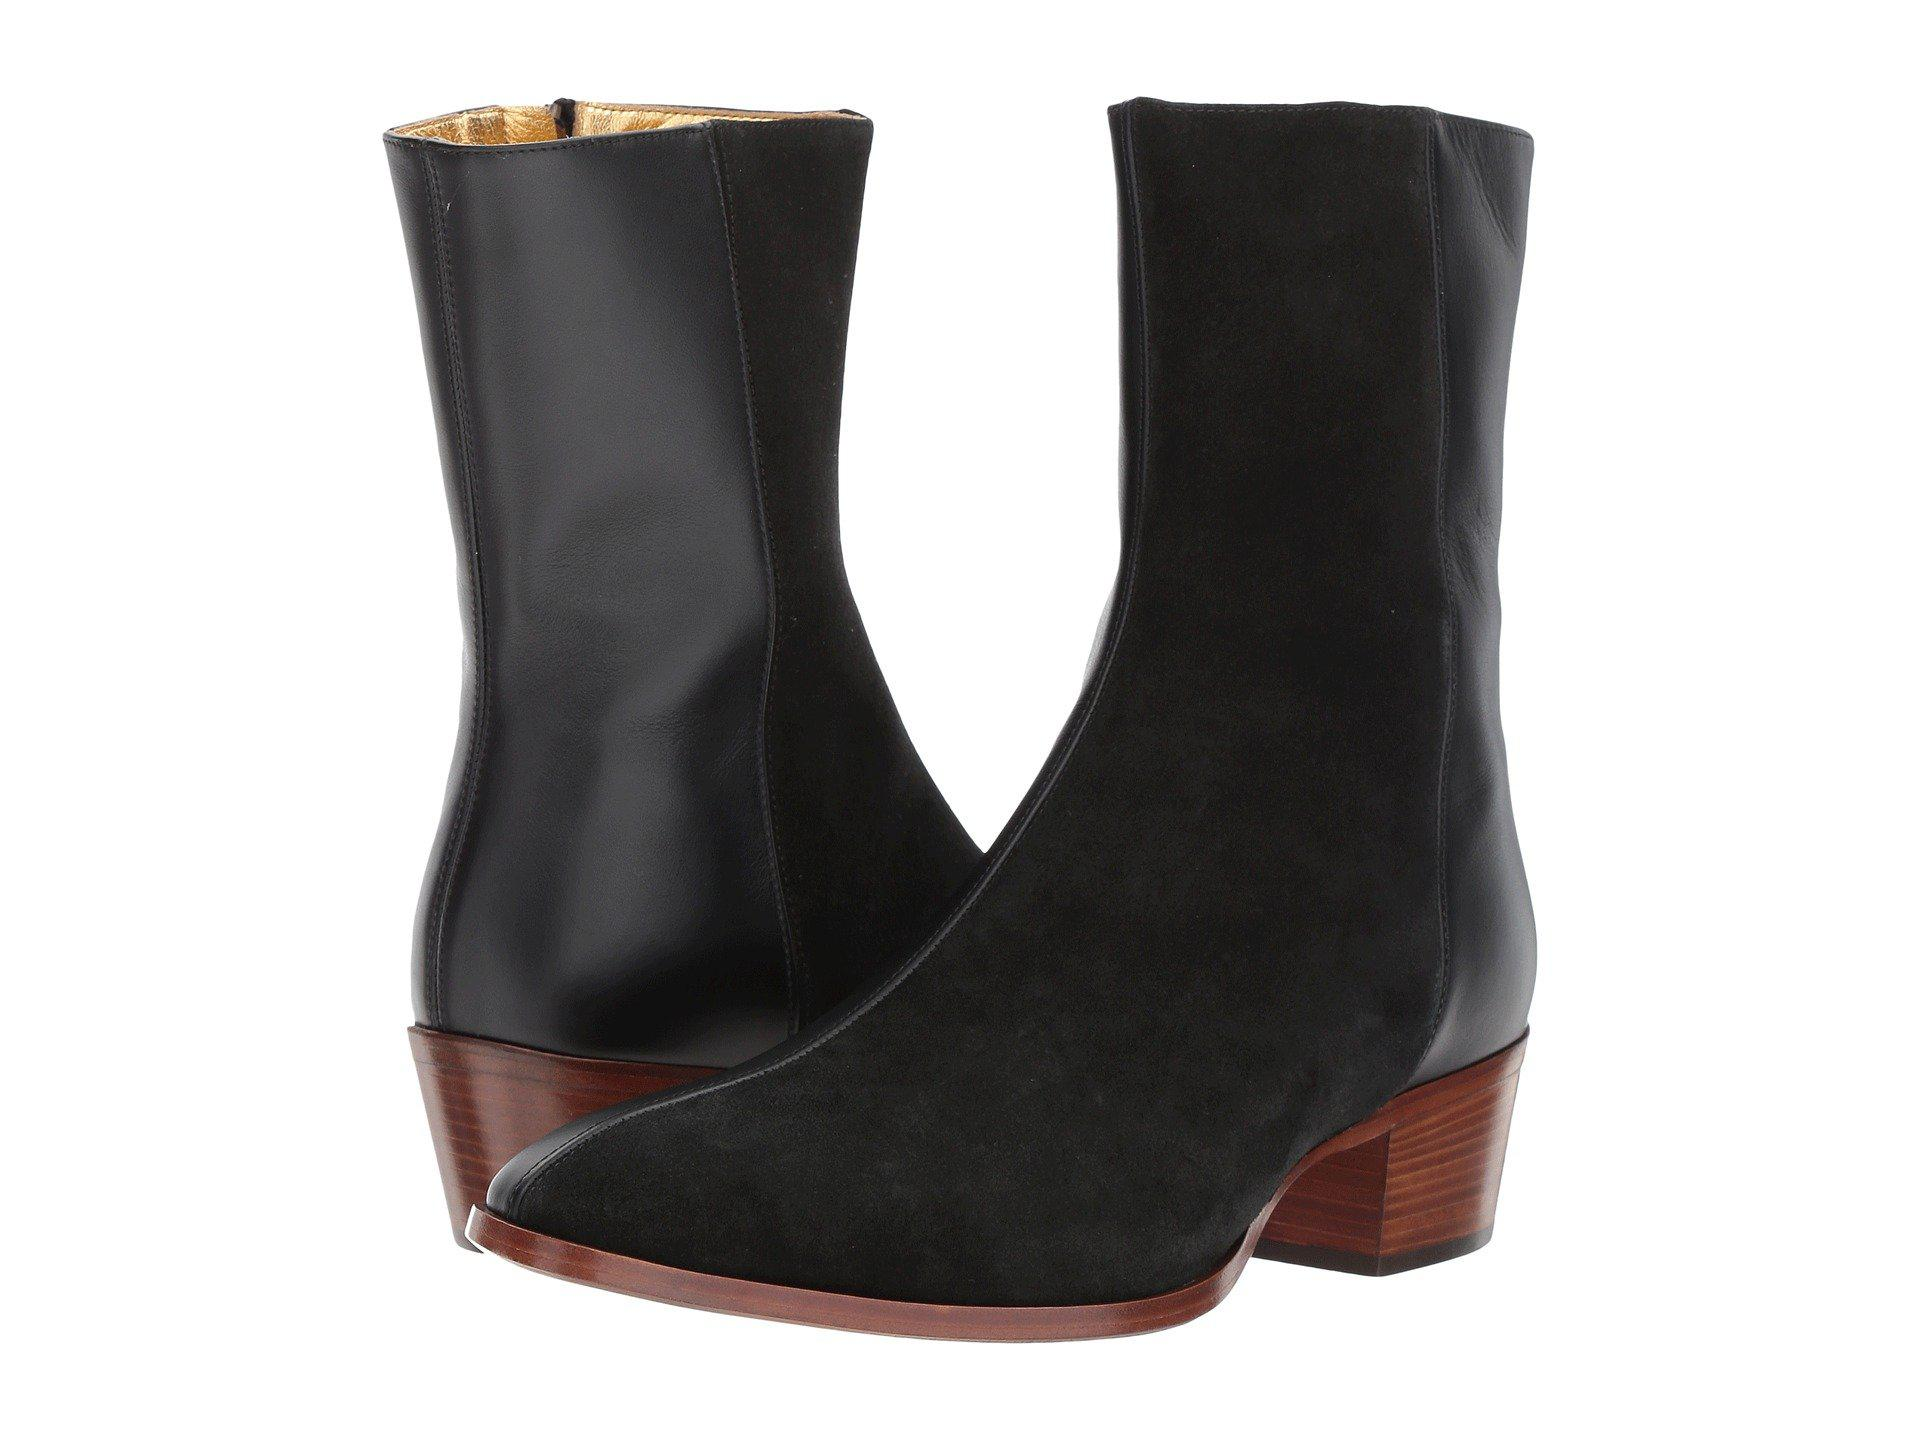 Vivienne Westwood Jester Ankle Boots 3m9haIl